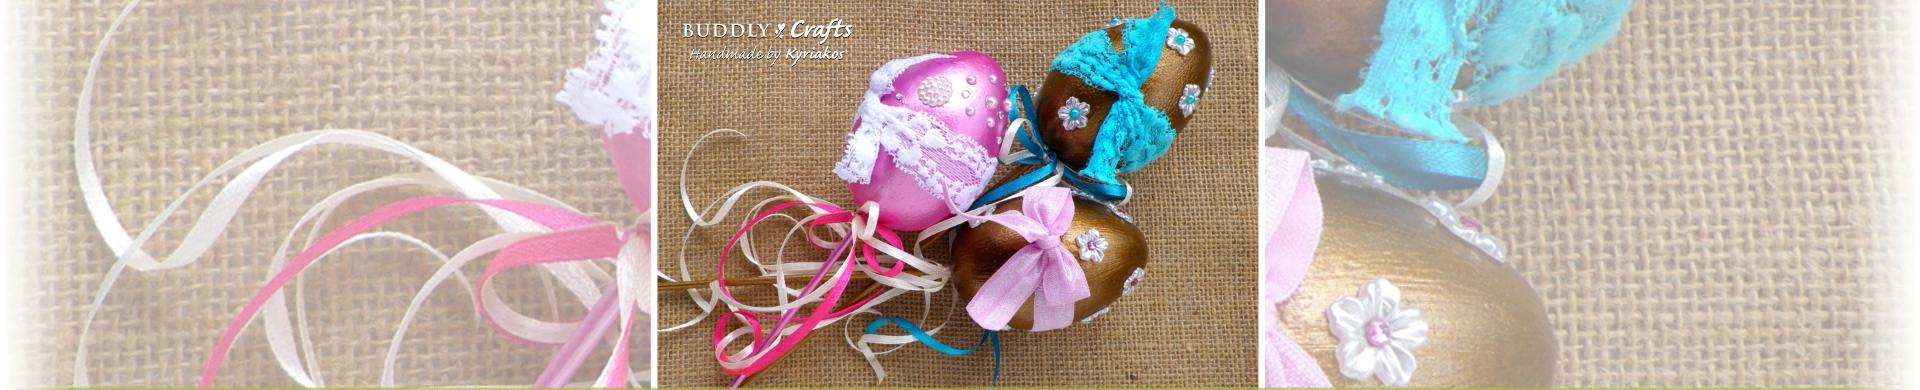 Lace Decorated Metallic Easter Egg Plant Pokes